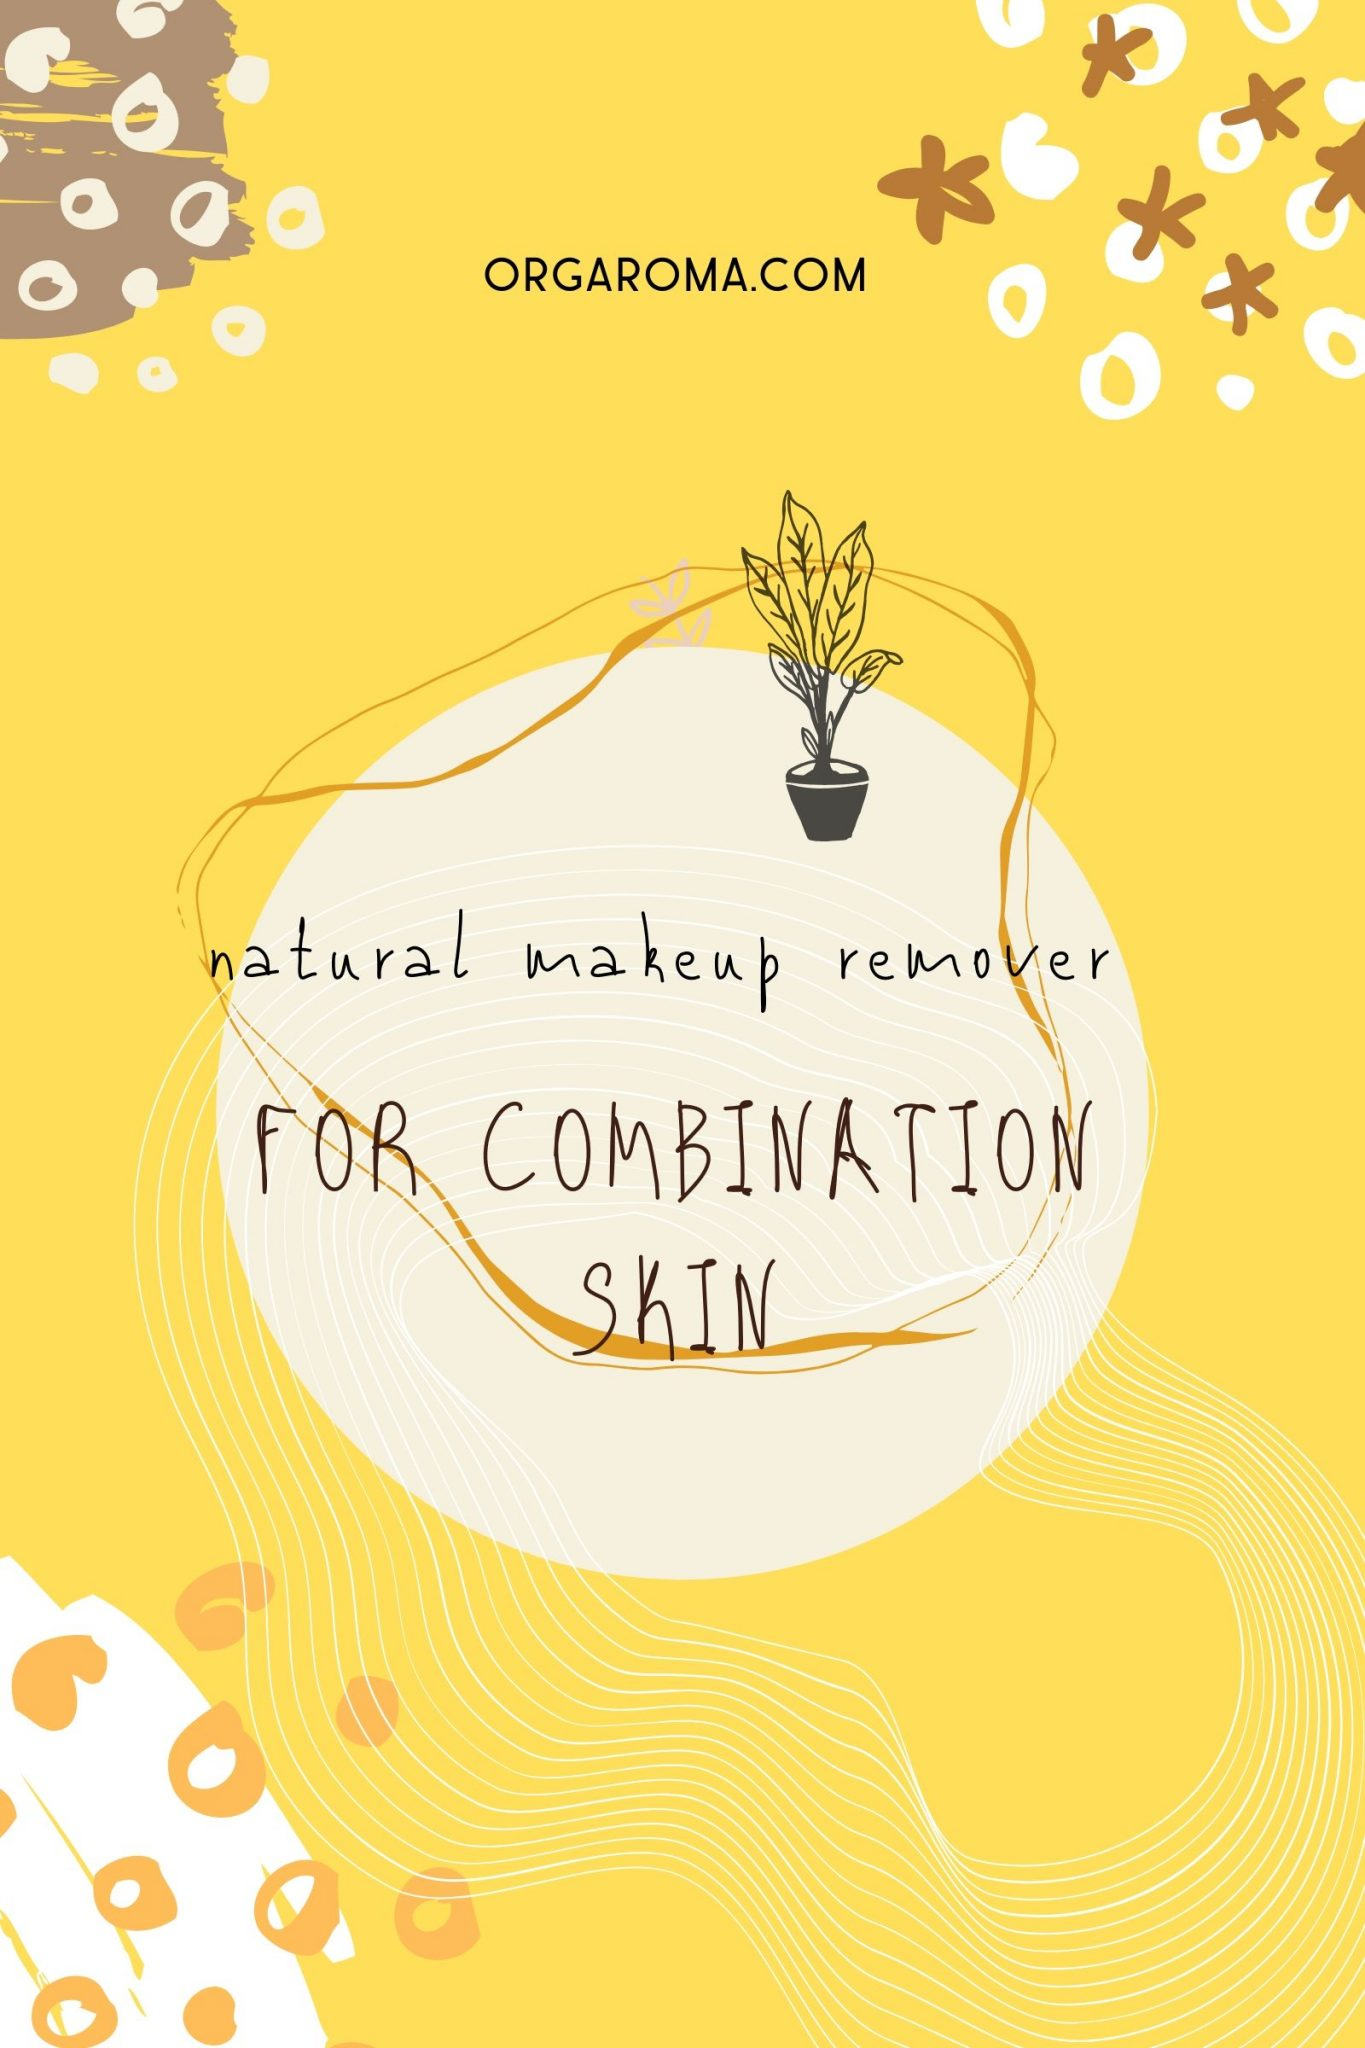 Natural Makeup remover for Combination Skin